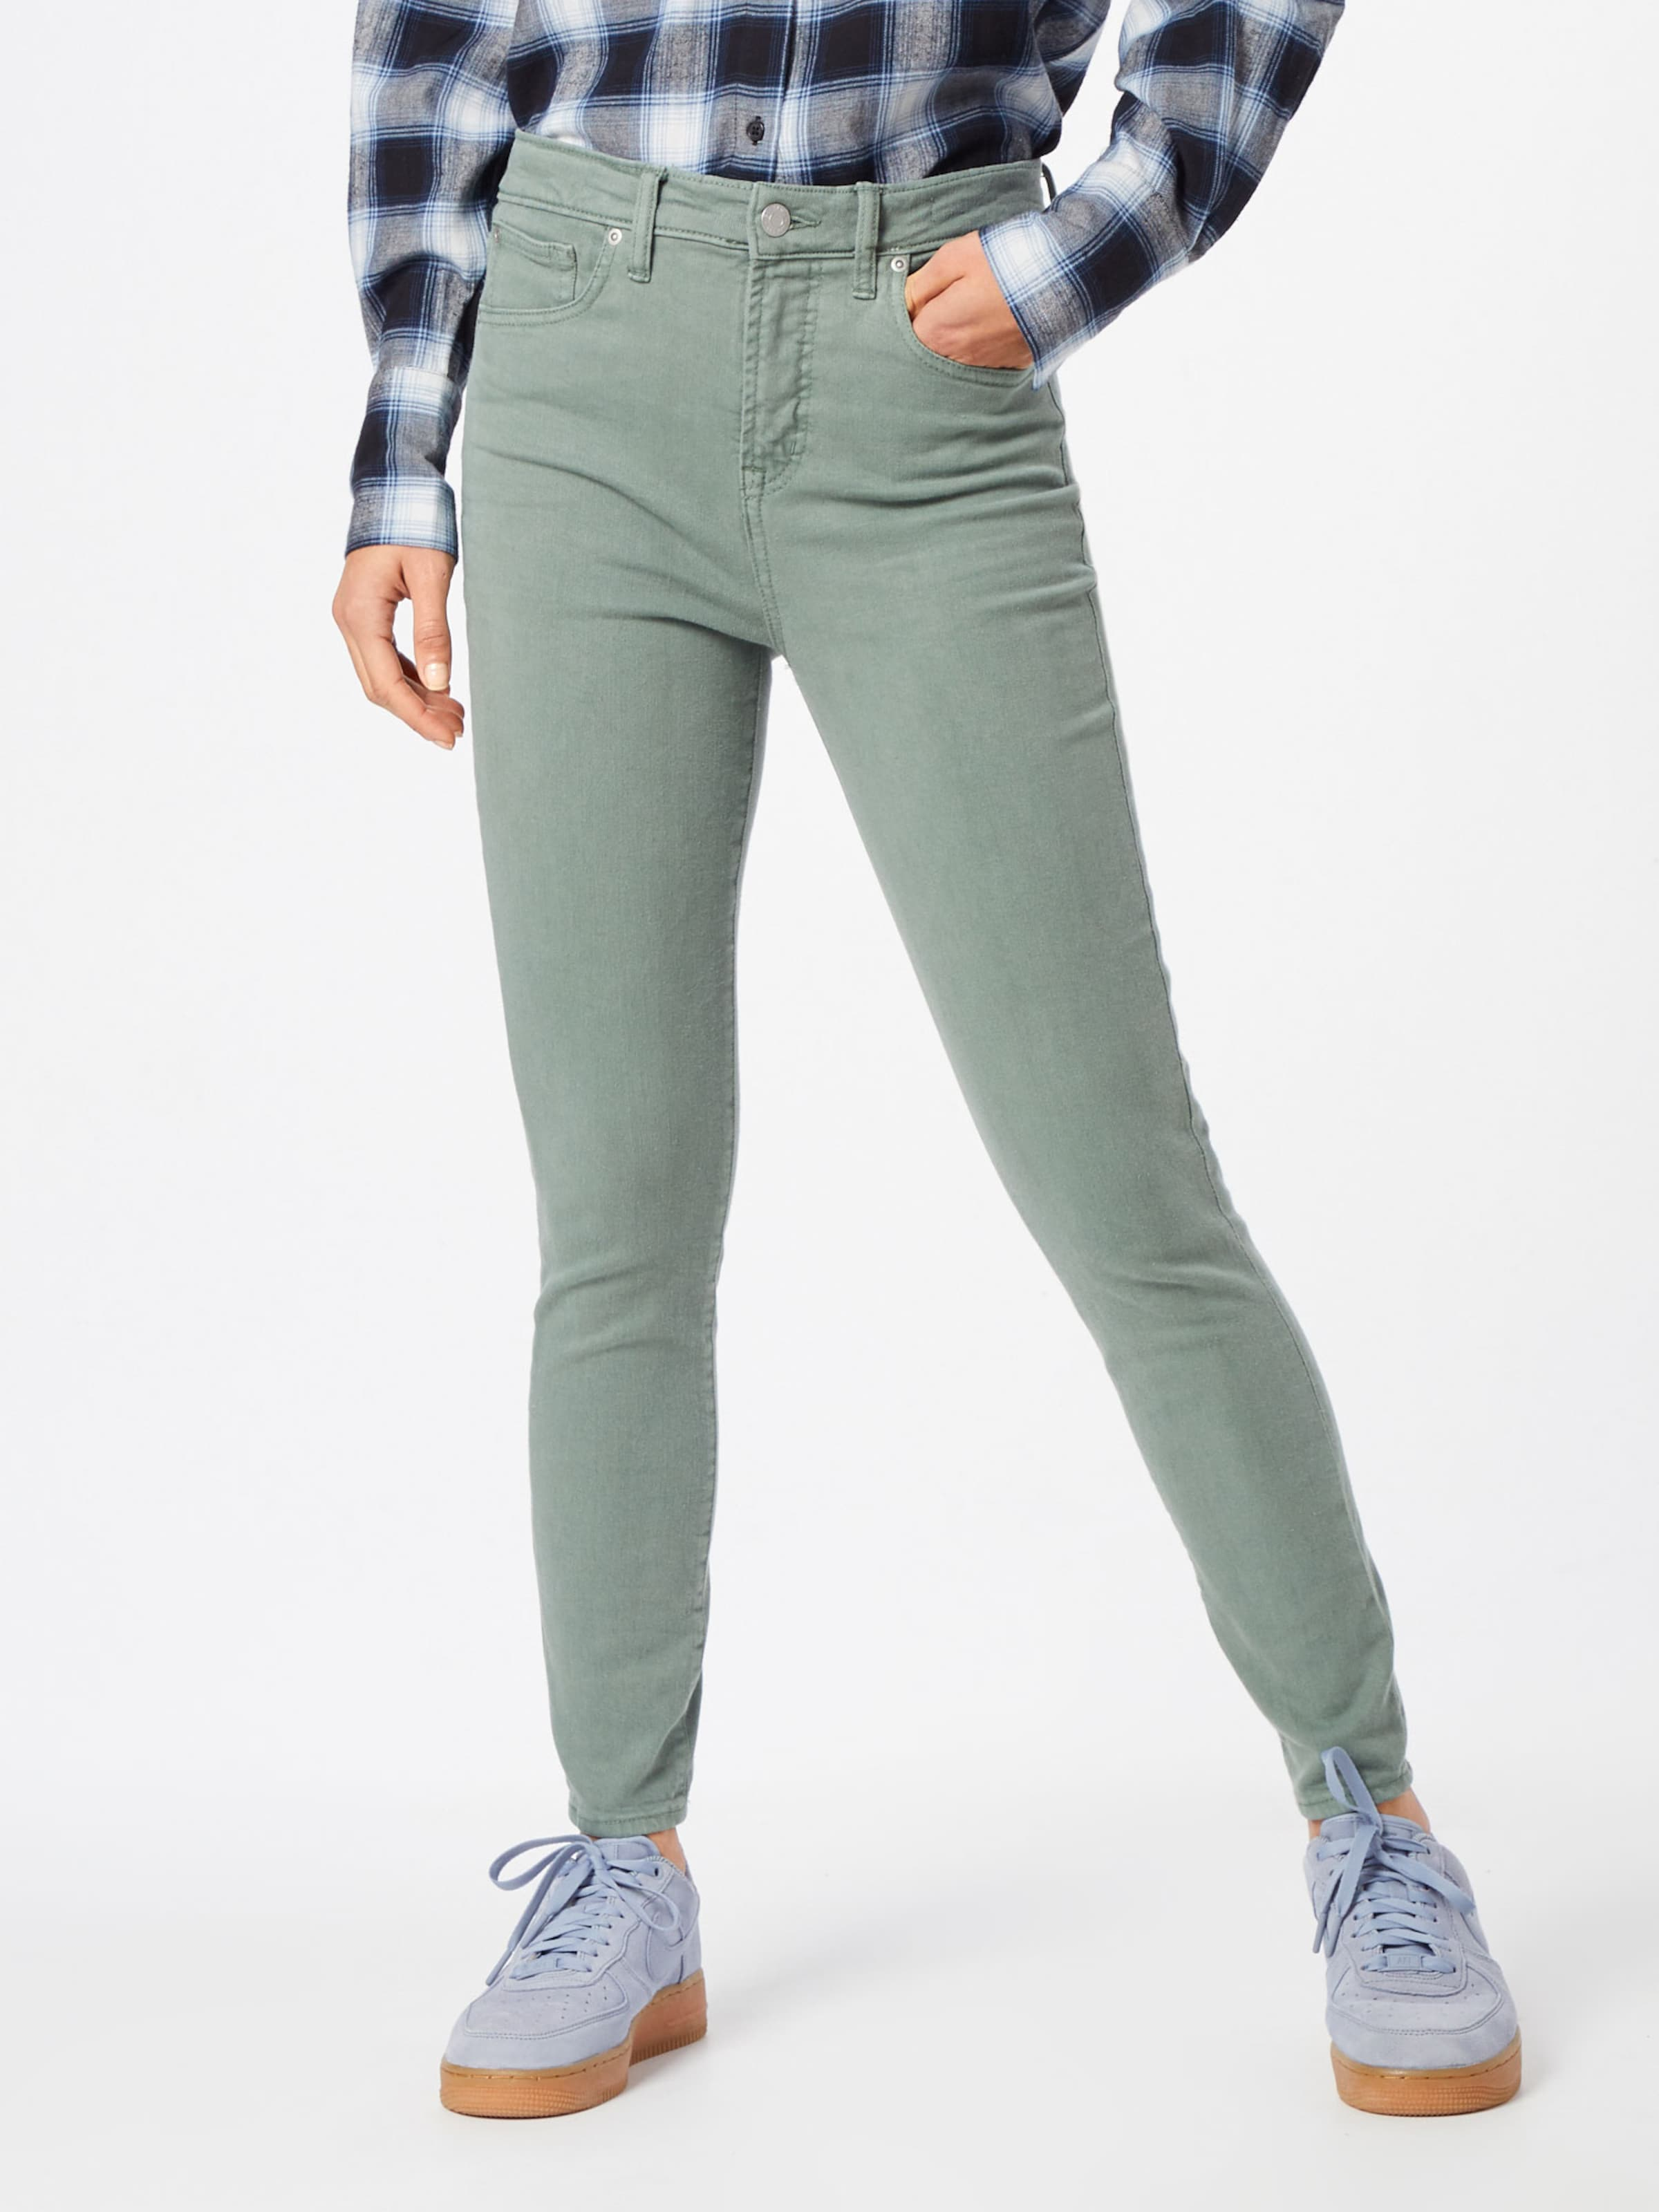 'tr Washed Gap In Hr Color' Hellgrün Skinny Ankle Jeans ZuPTOXwik